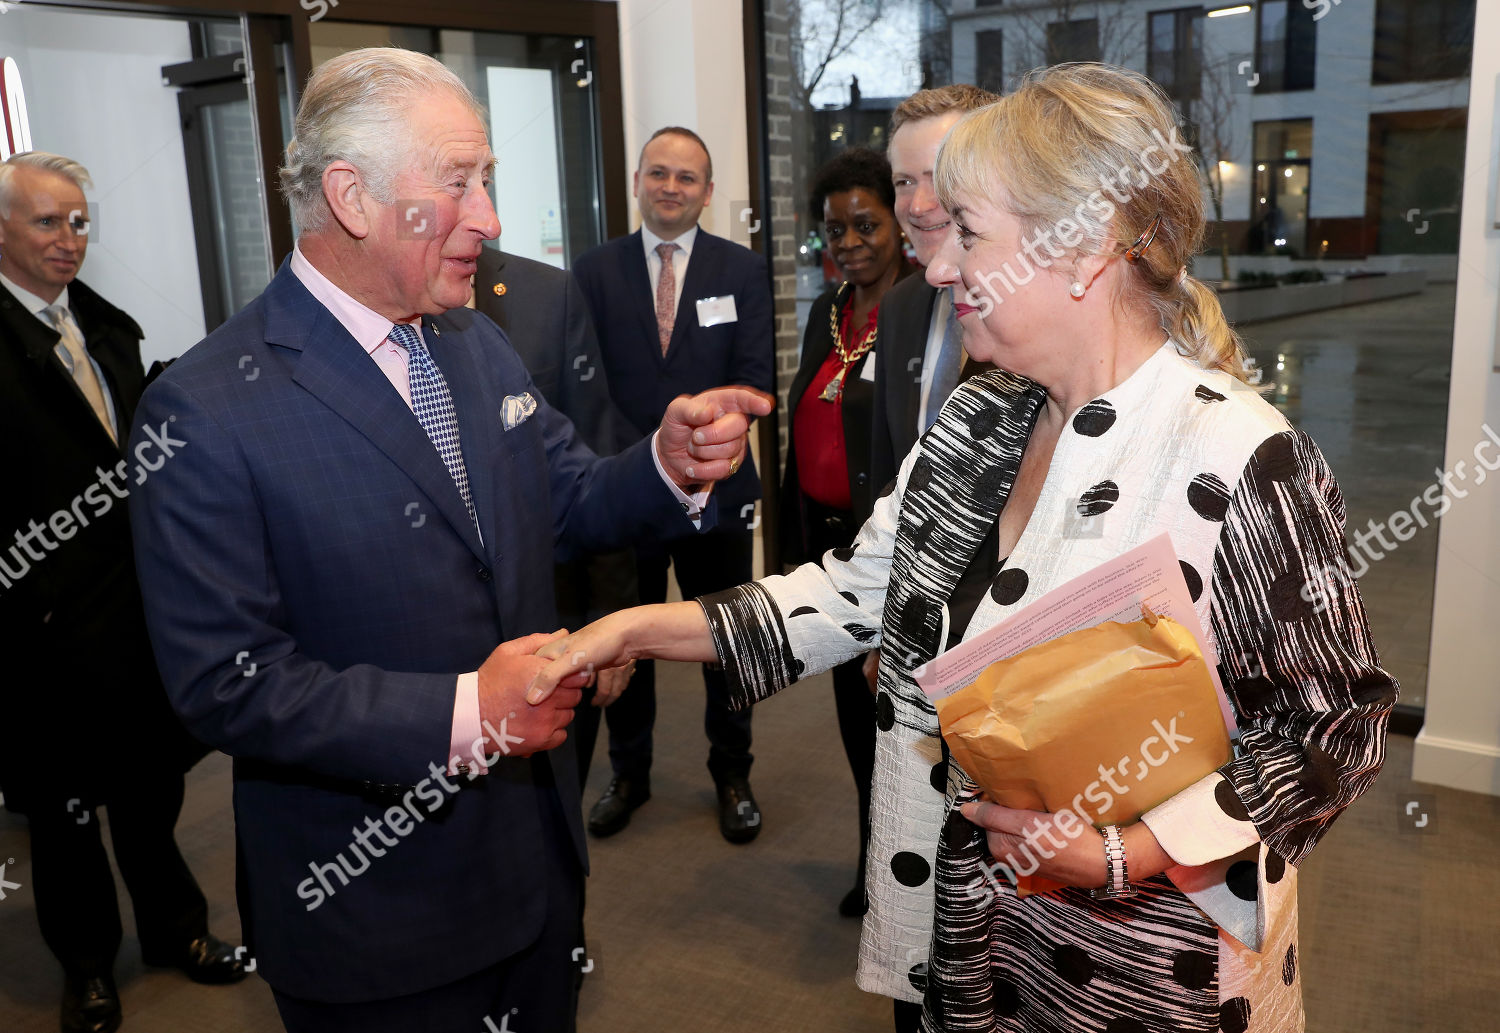 Stock photo of Opening of the Prince's Trust New South London Centre, UK - 17 Dec 2019